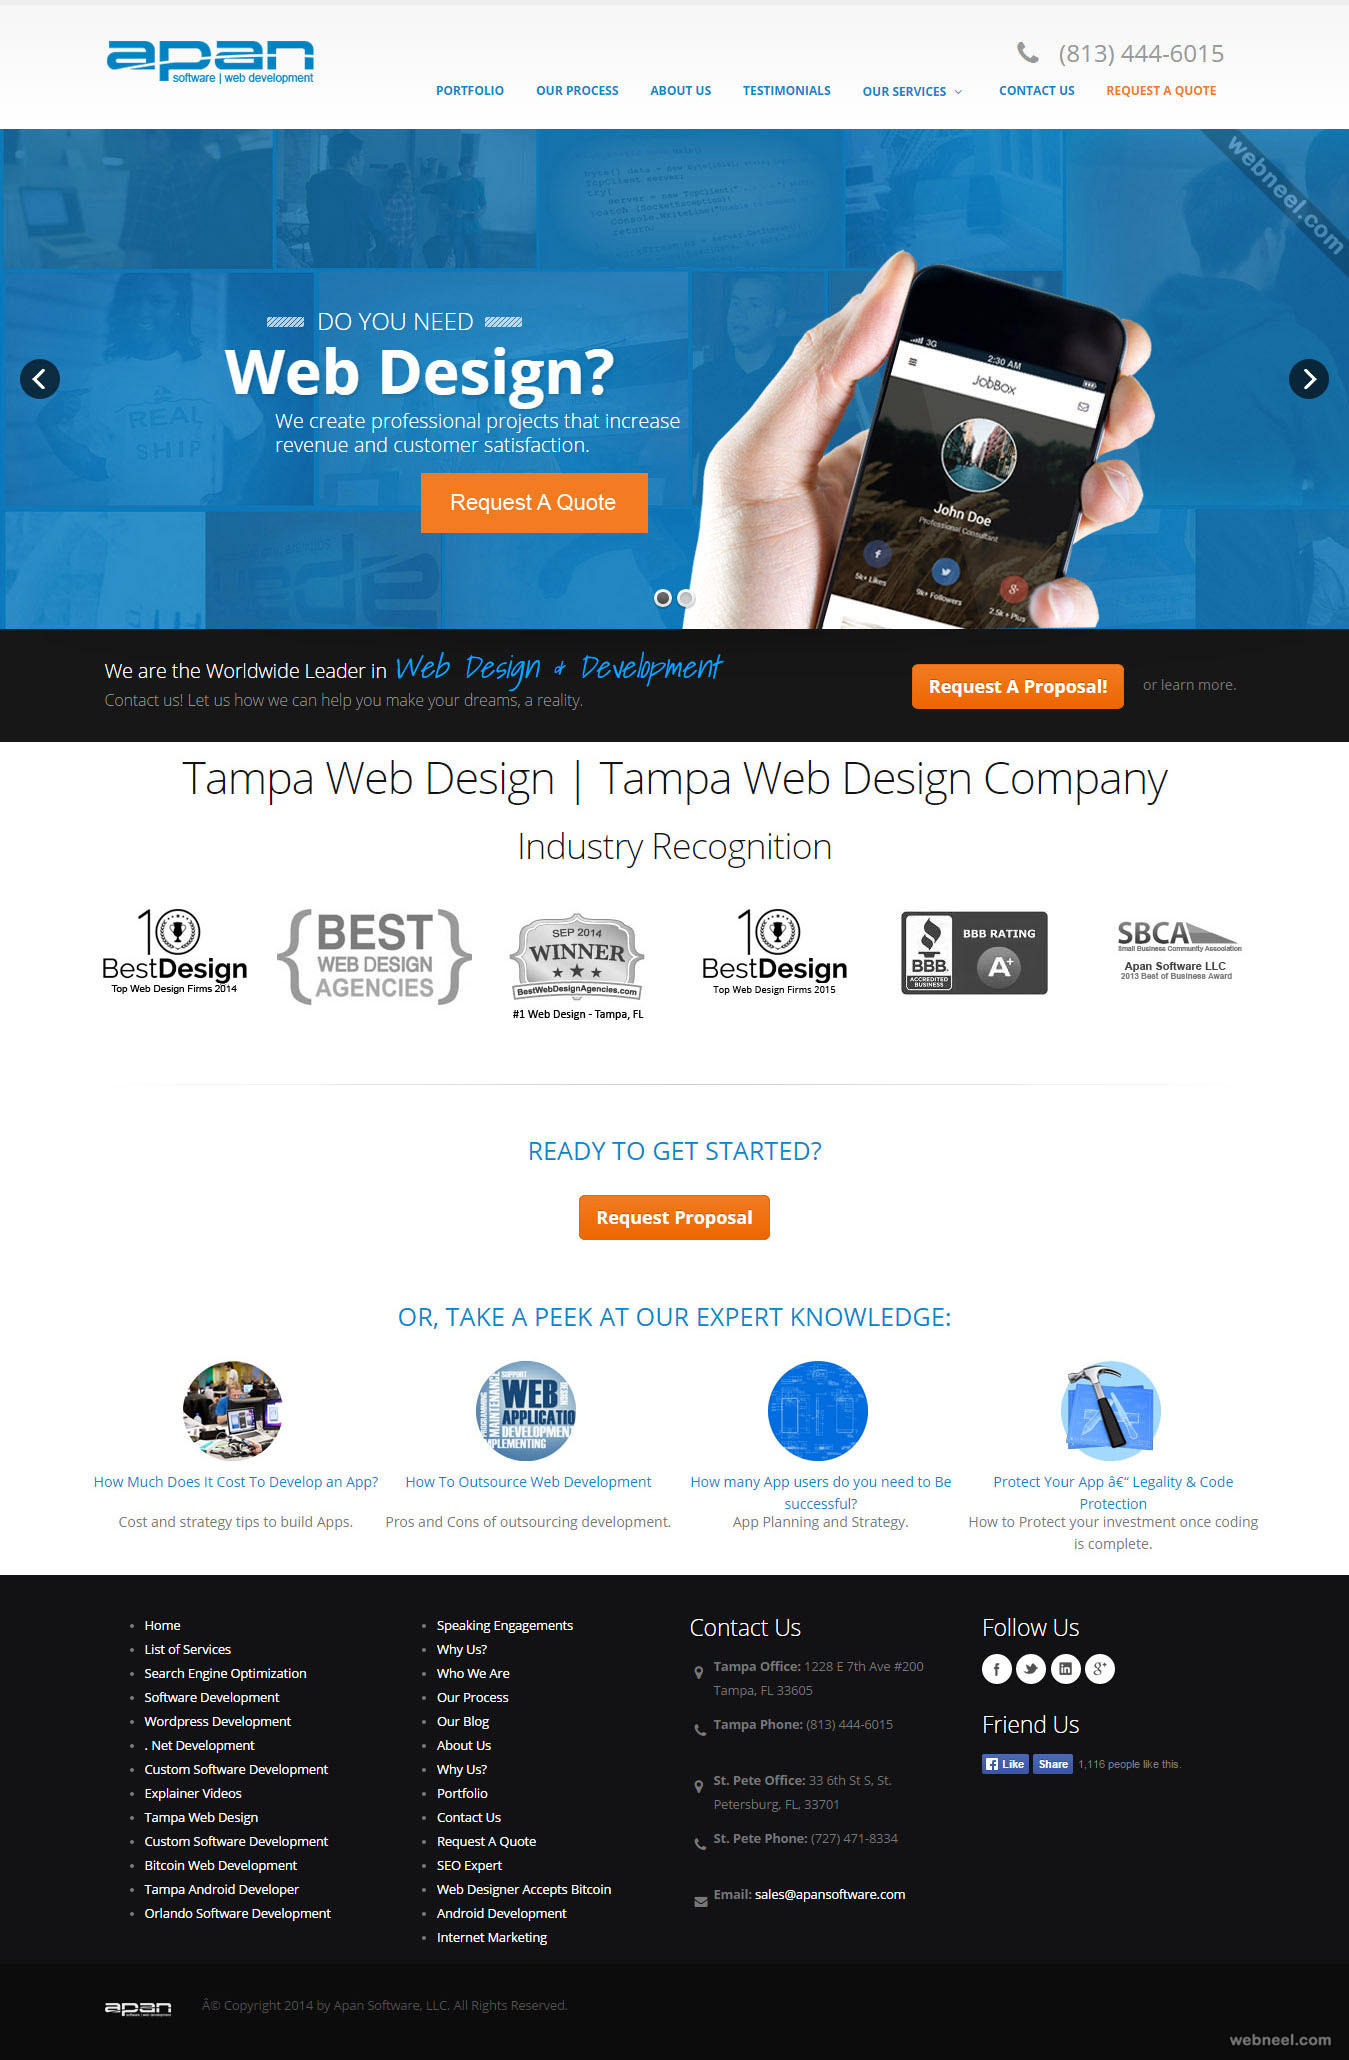 top design company tampa web design florida